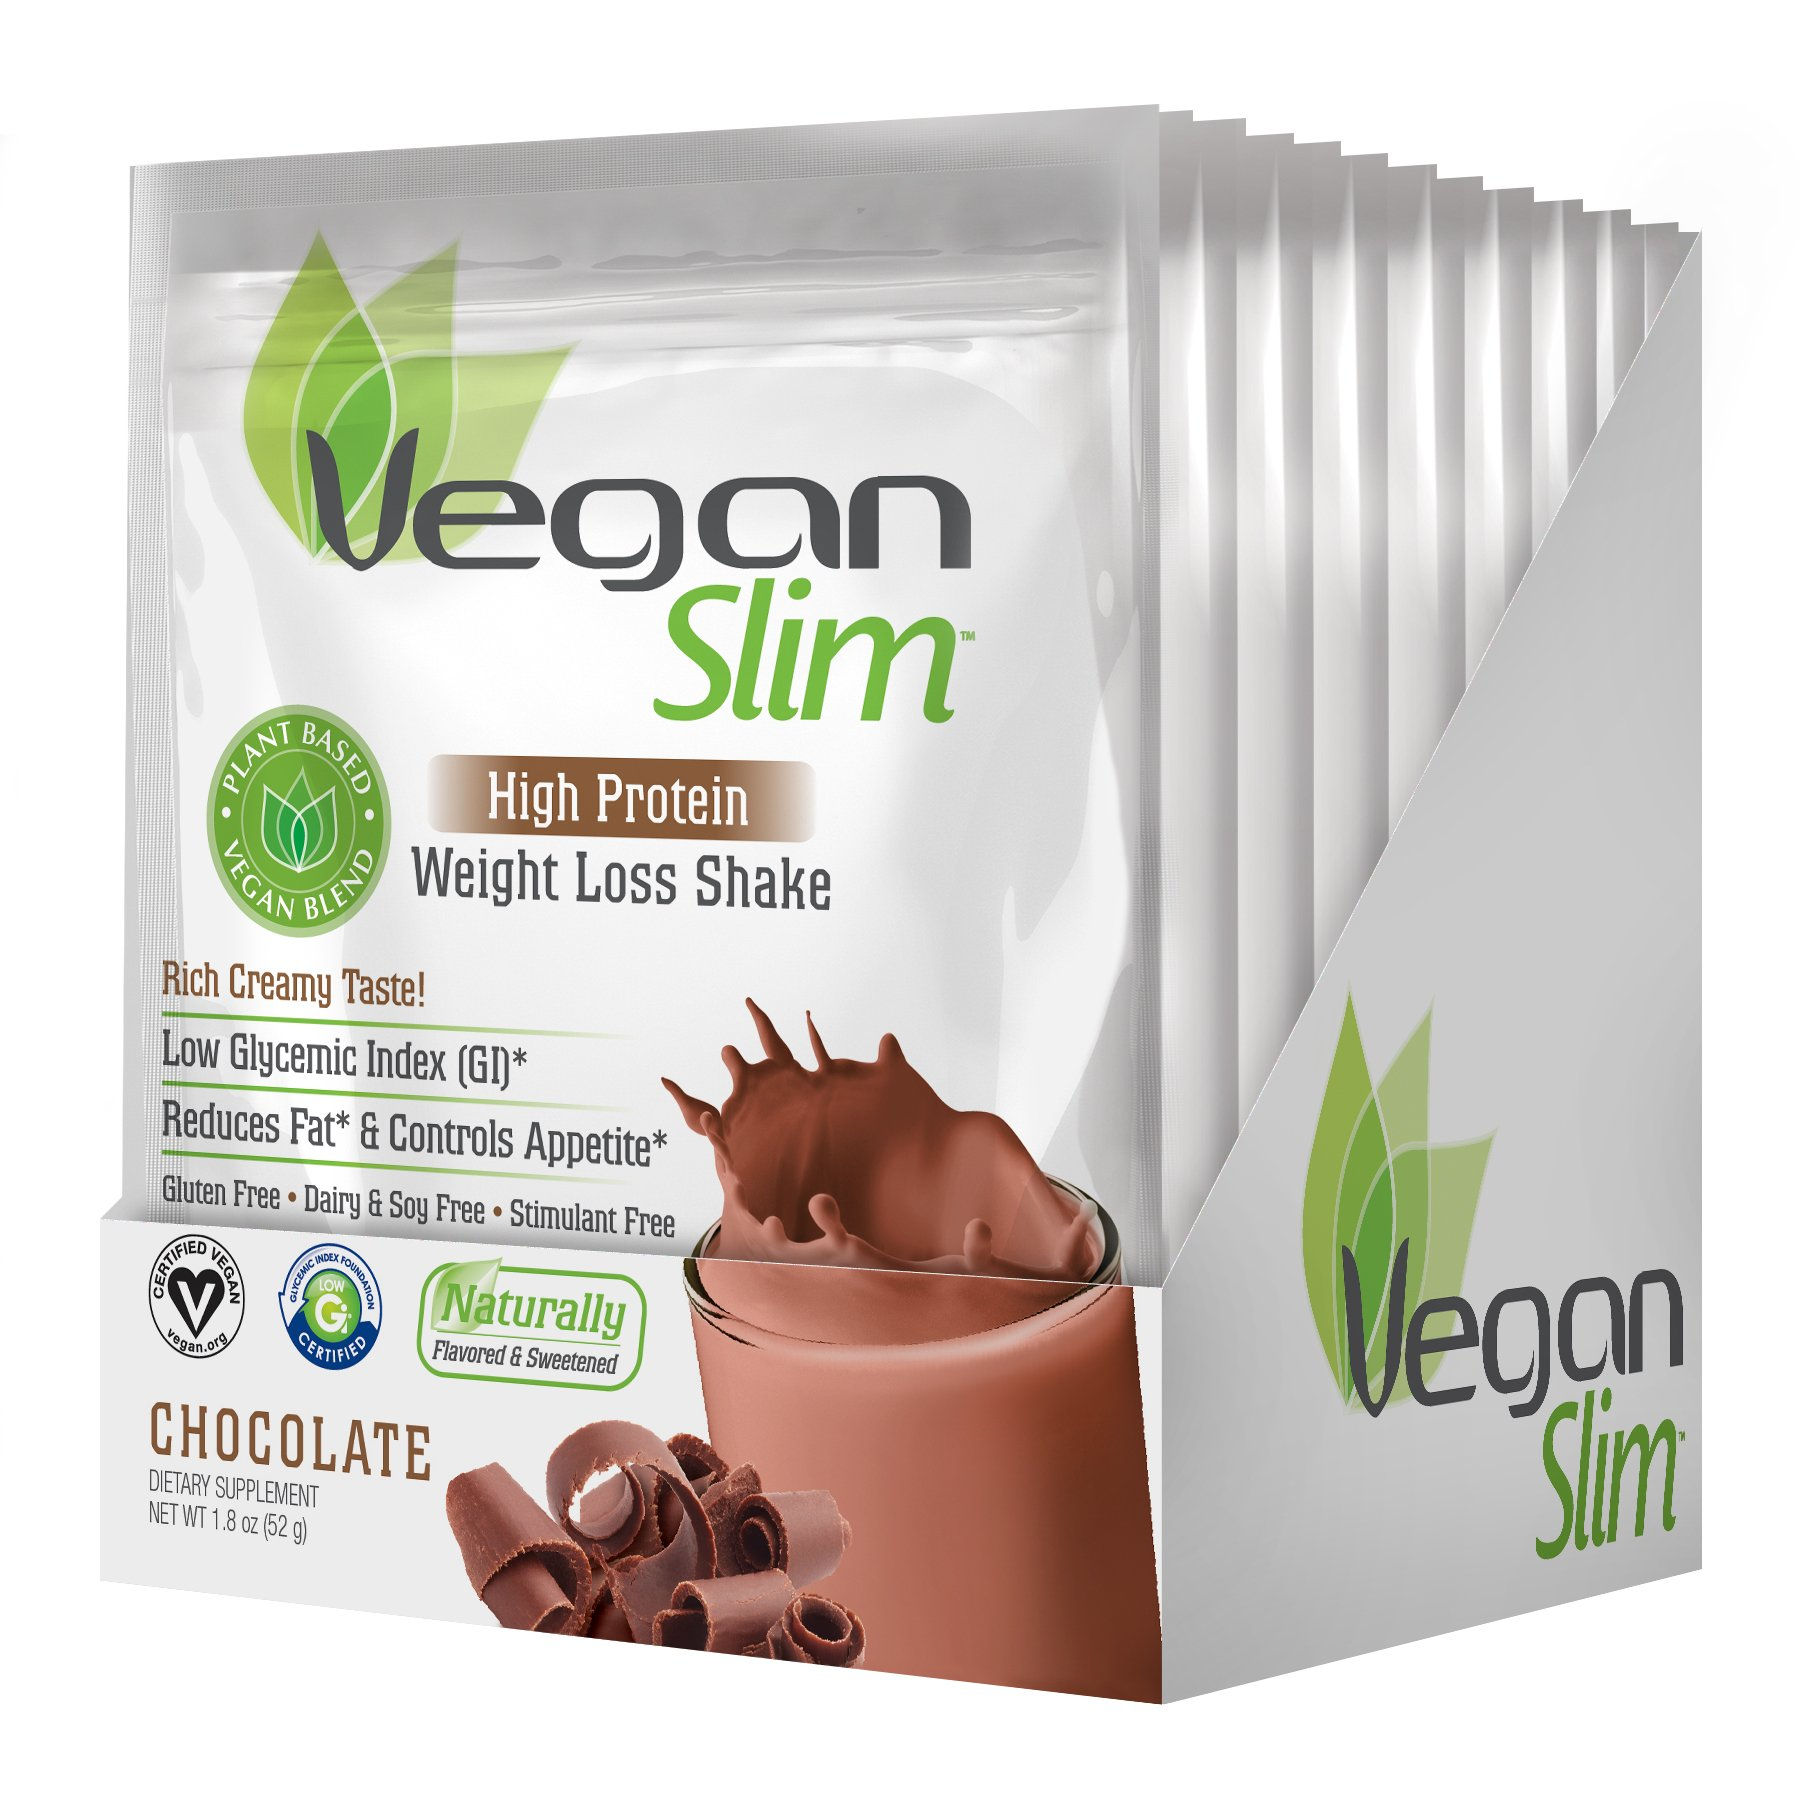 High protein for weight loss